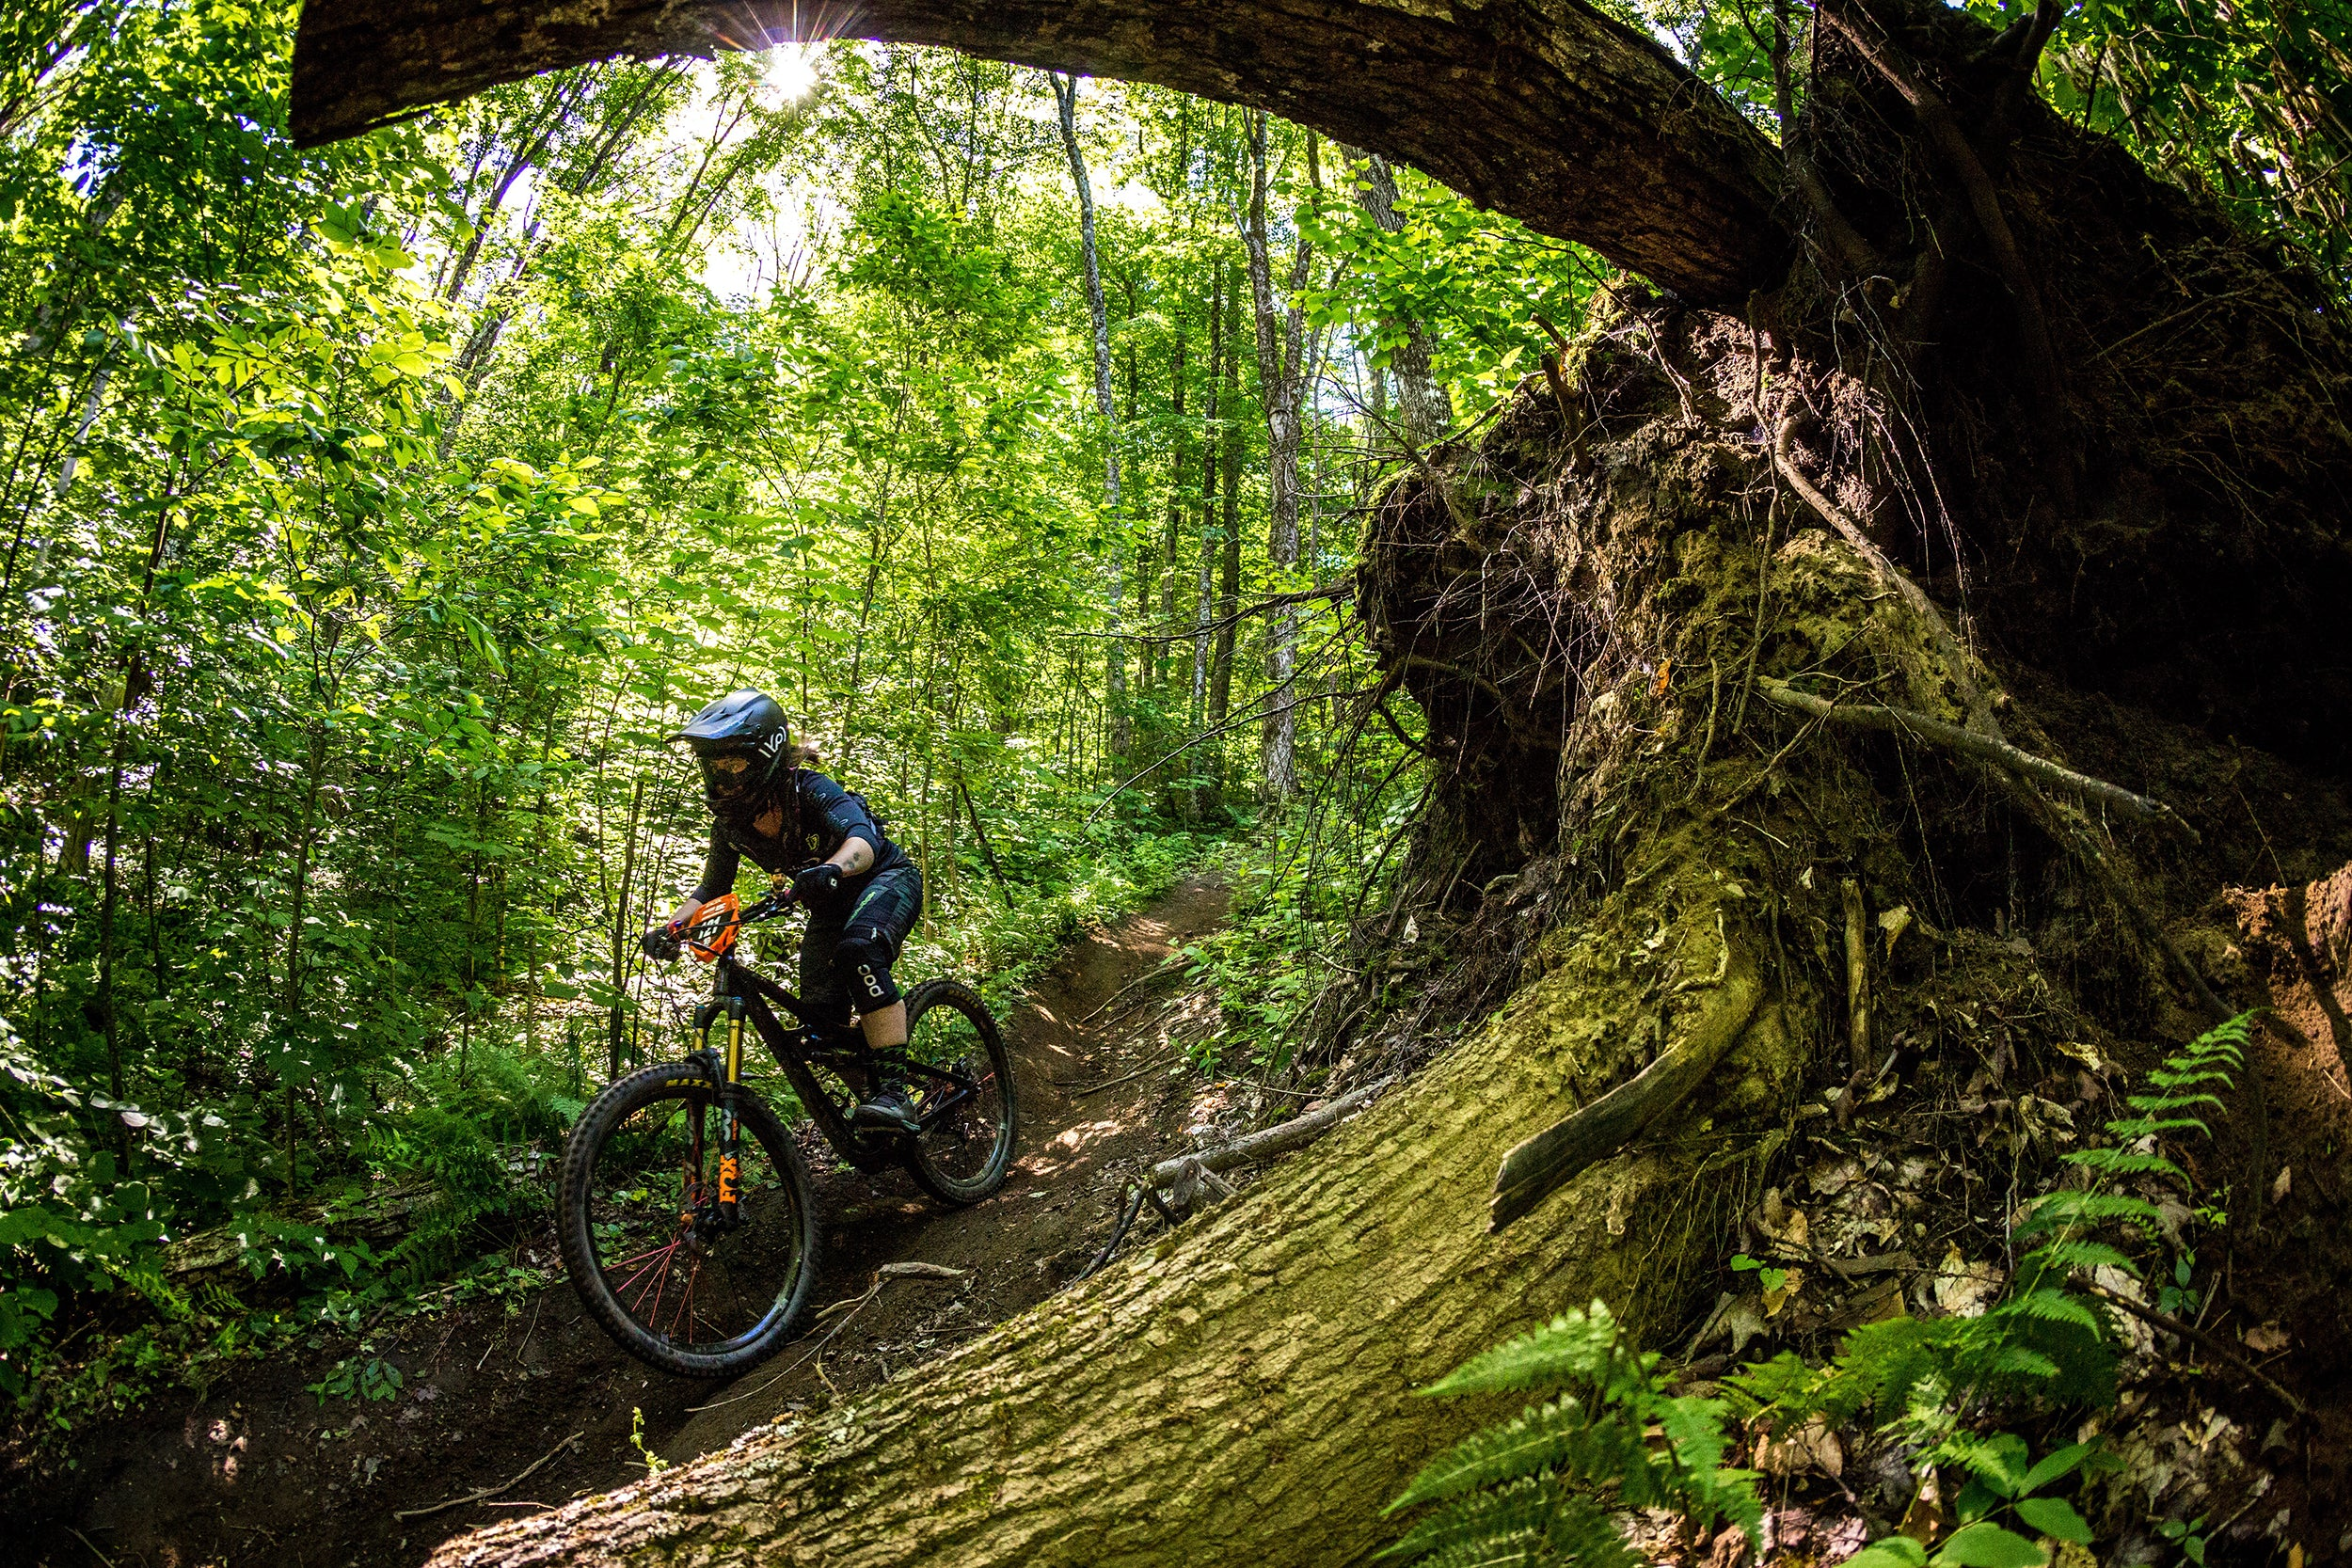 Downhill Bike Park Tips for First-Timers: Go With a Friend